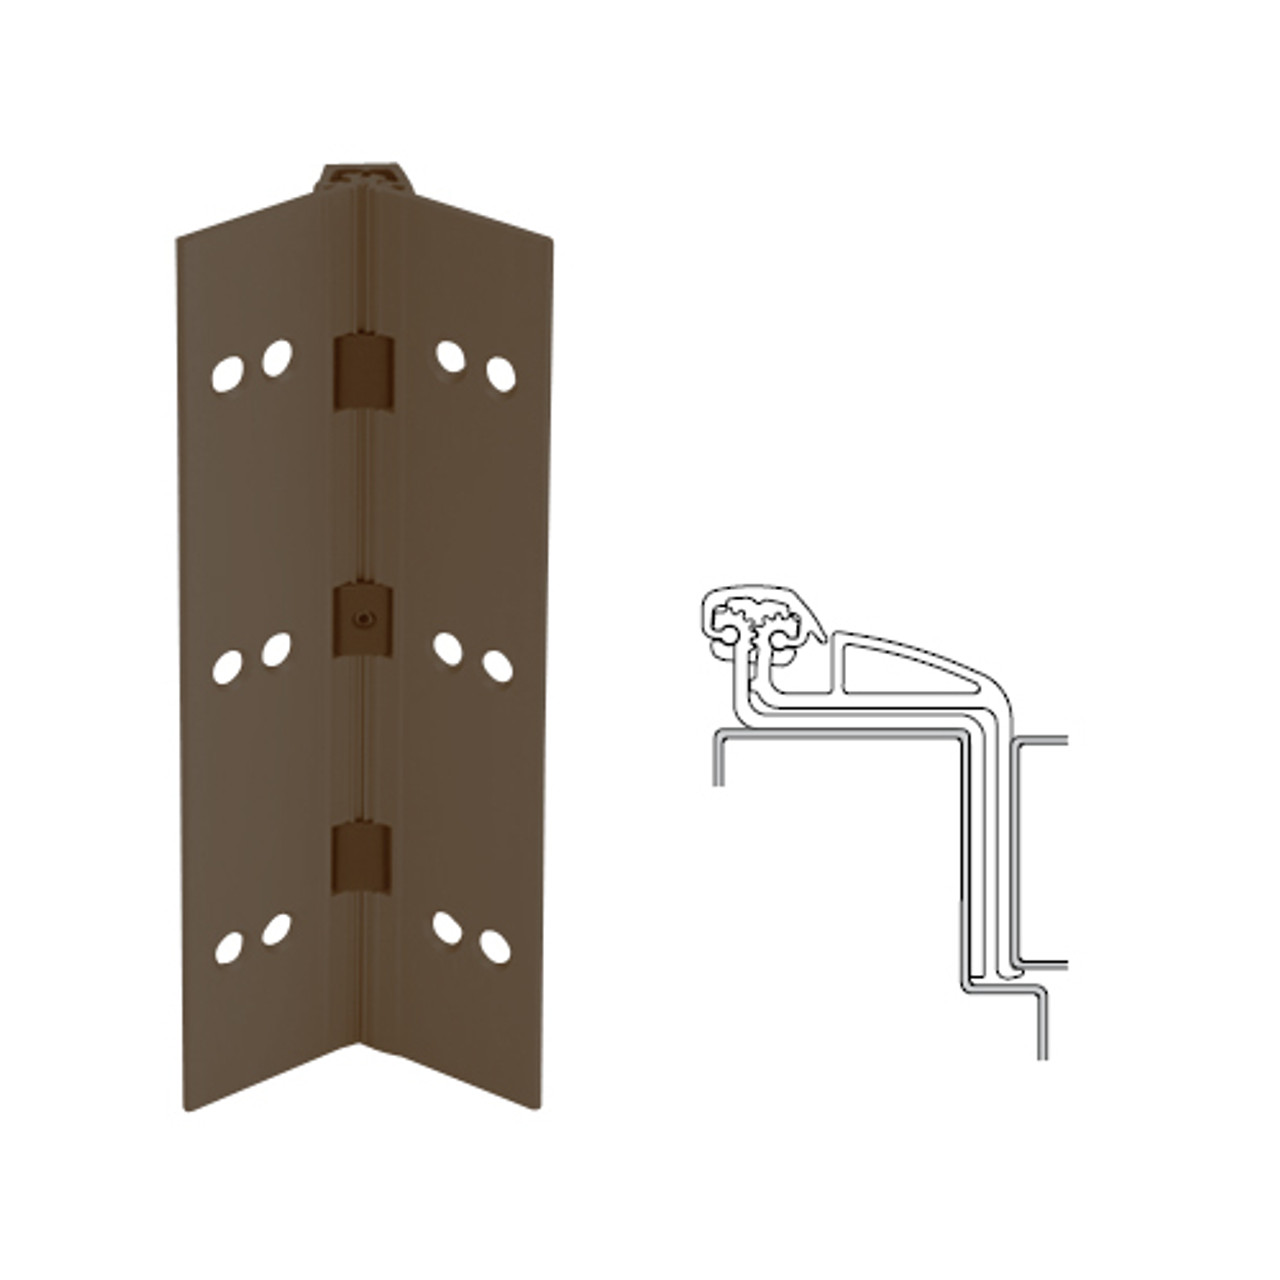 041XY-313AN-85-TFWD IVES Full Mortise Continuous Geared Hinges with Thread Forming Screws in Dark Bronze Anodized